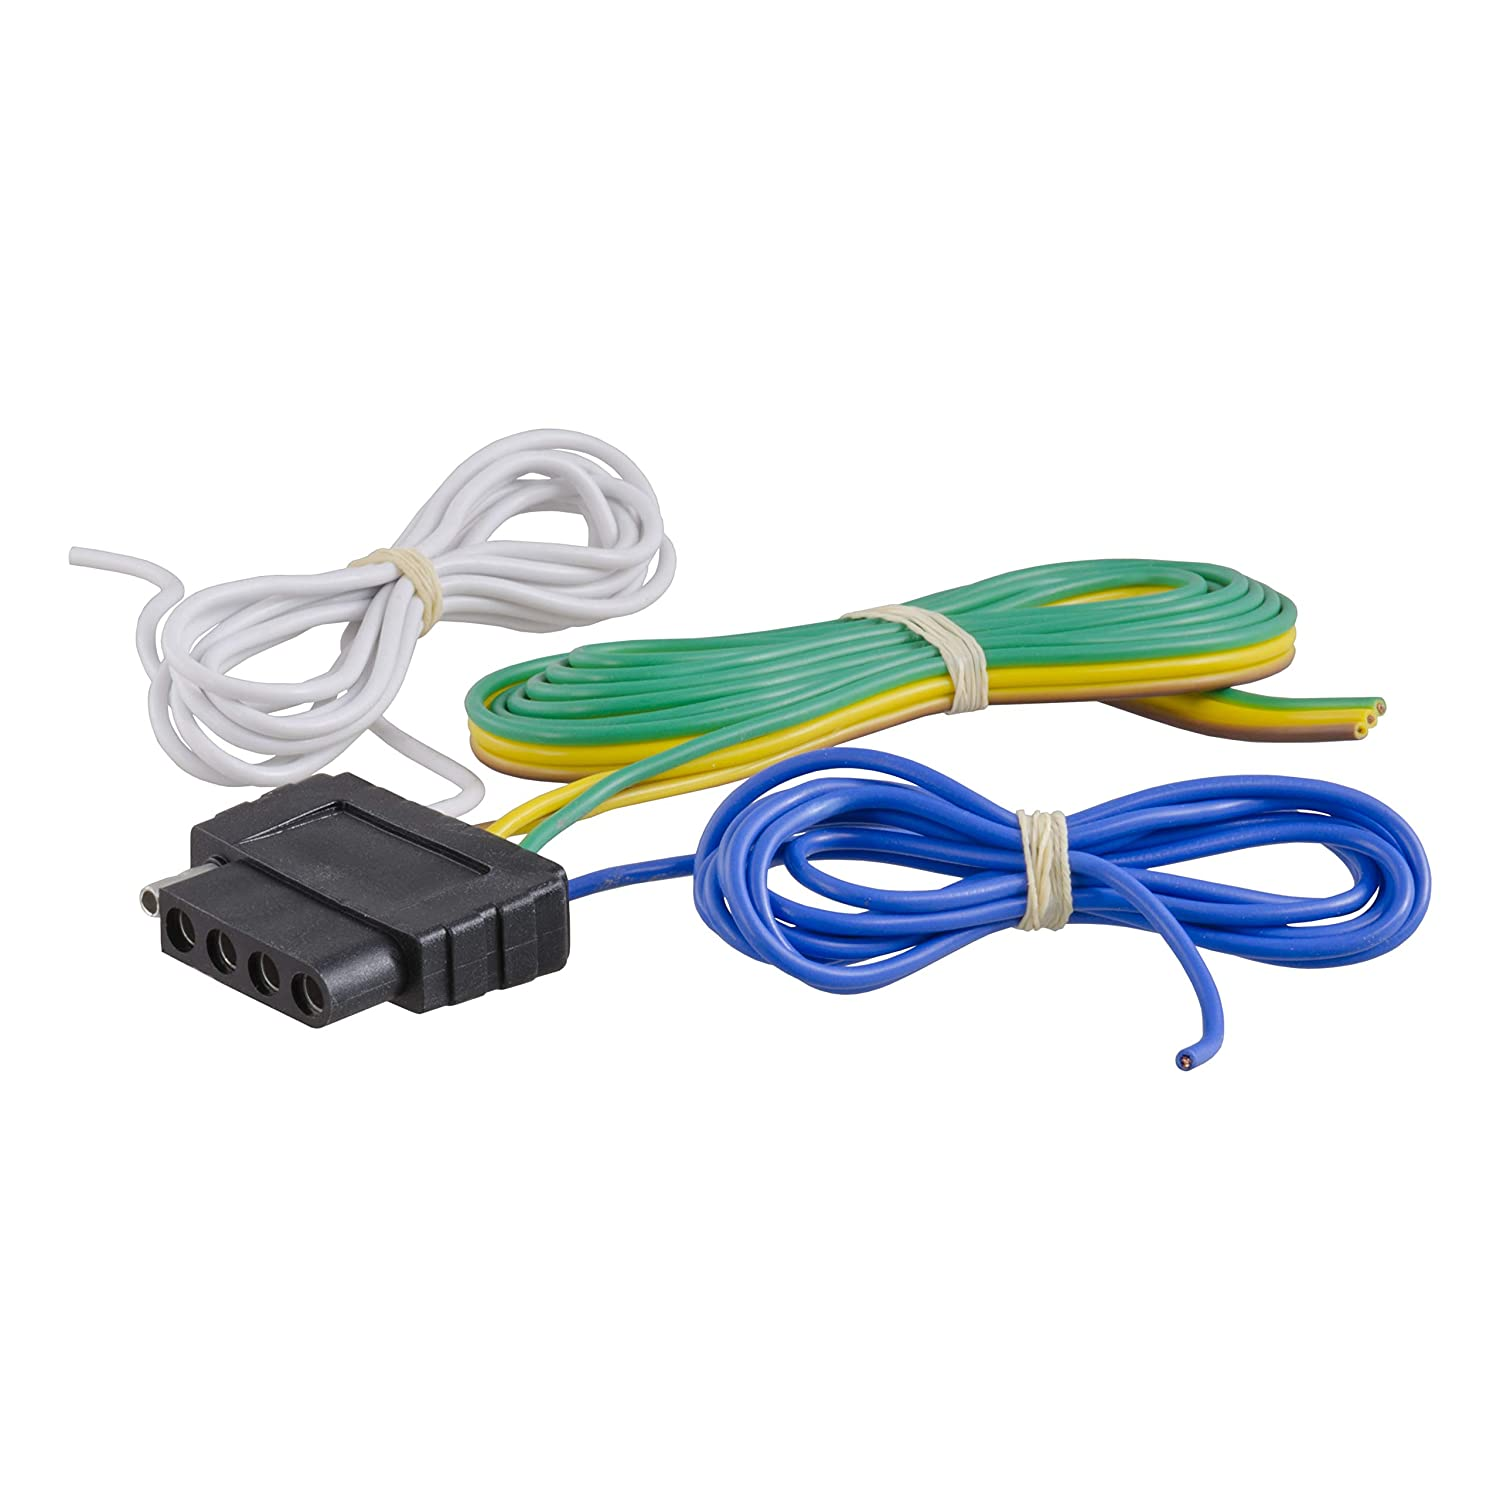 curt 58530 vehicle side 5 pin trailer wiring harness with 60 inch wires, 5 wire trailer wiring 5 Pin Trailer Wiring Harness